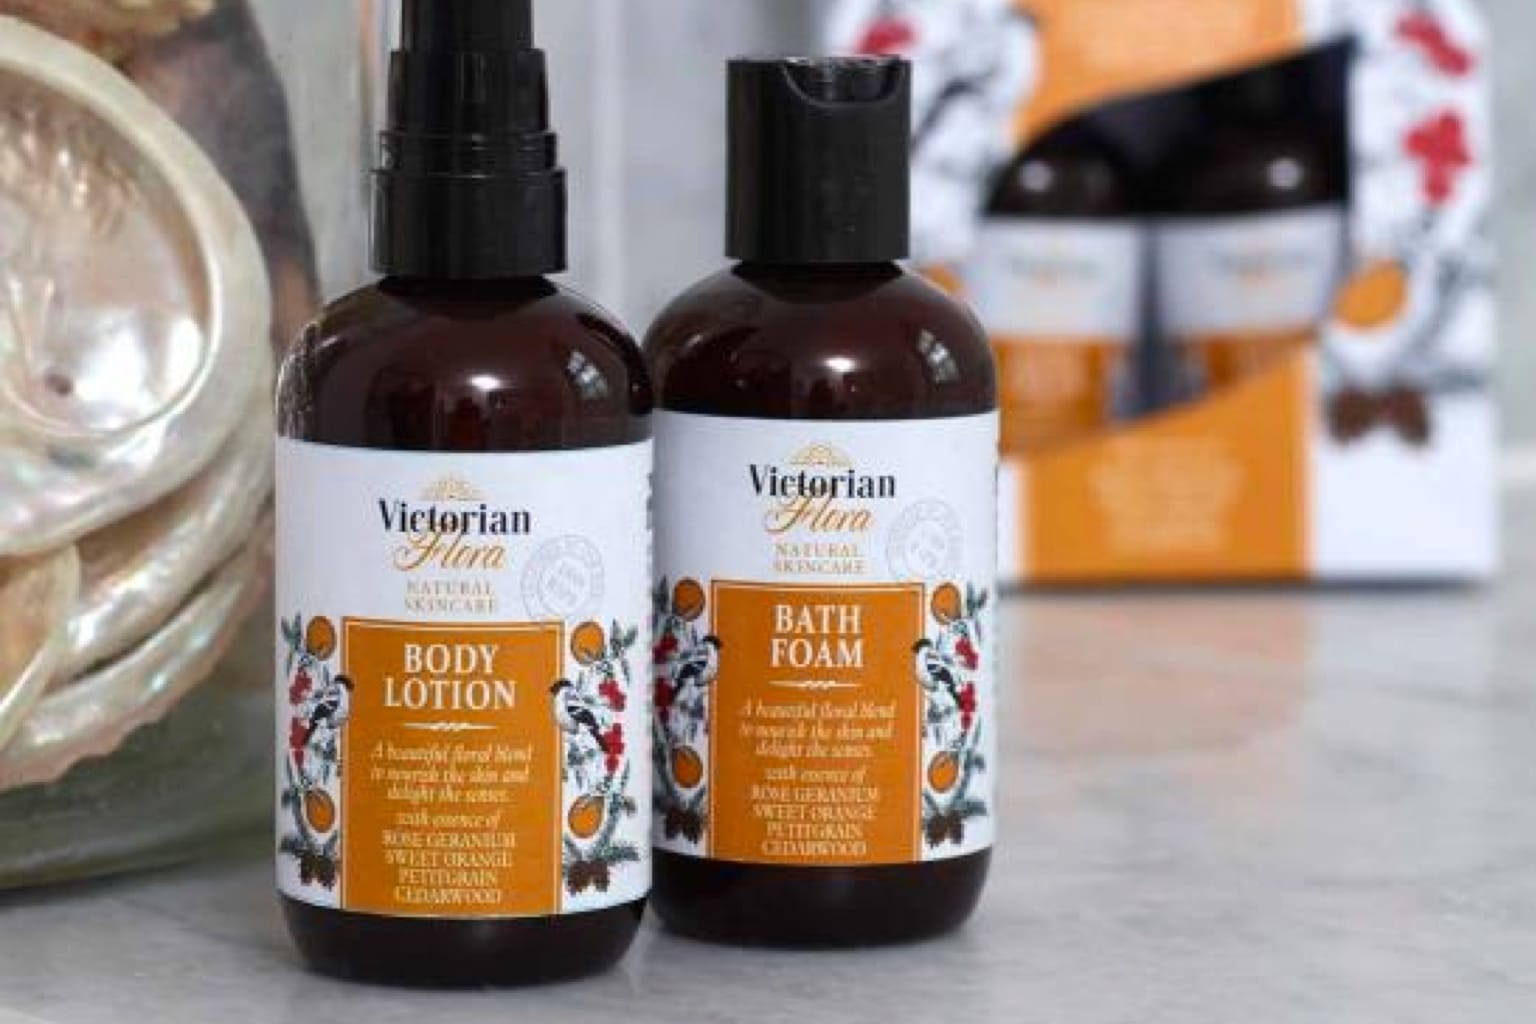 RSPB Victorian Flora Range Bath & Body Set